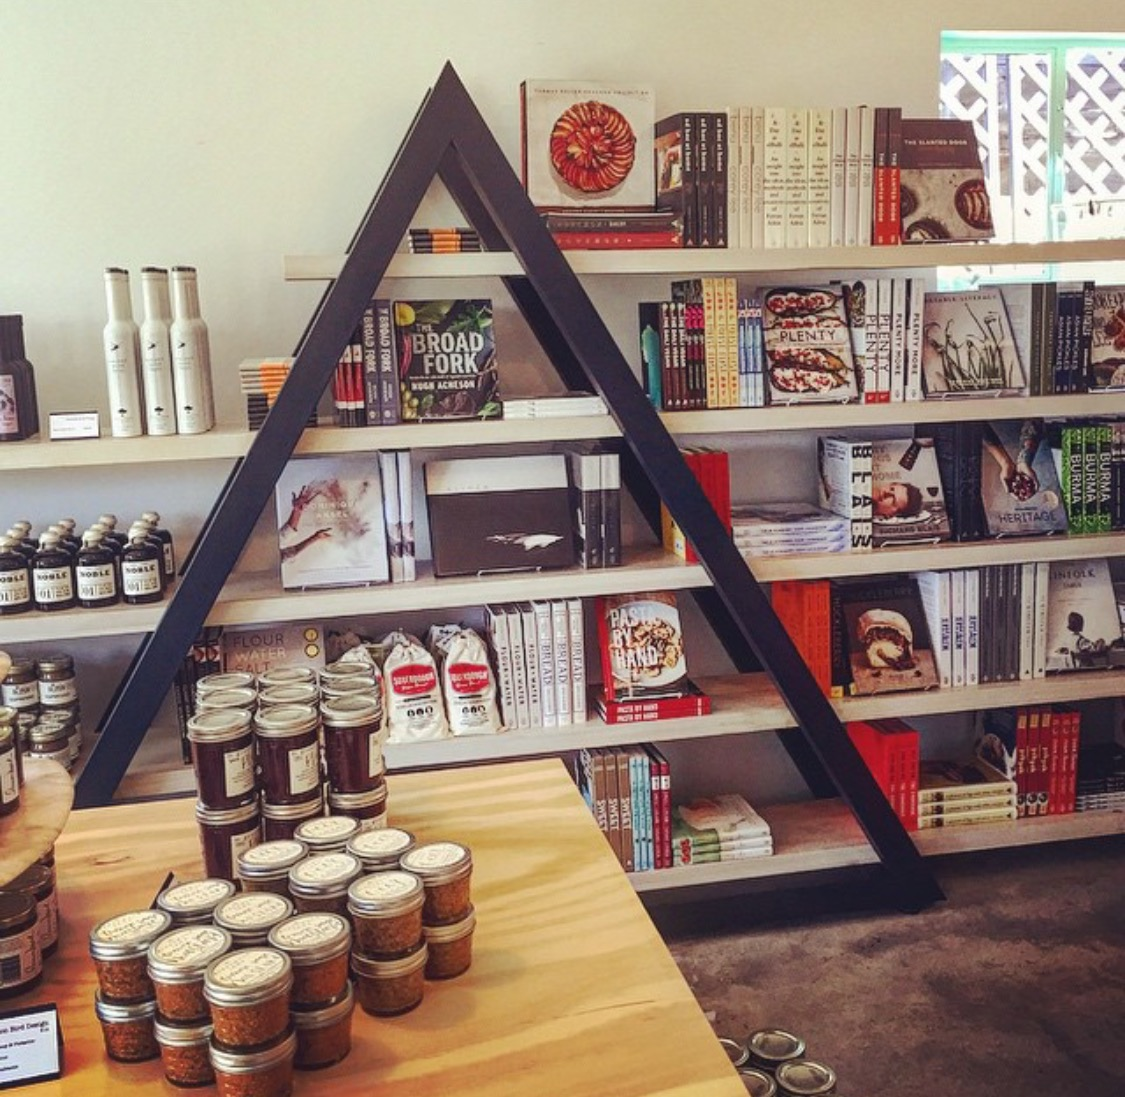 tripli kit is playa del rey s culinary one stop shop for cooking and don t worry if you can t make it to playa del rey tripli kit will soon launch an online store where culinary goodies can be purchased with a click of a